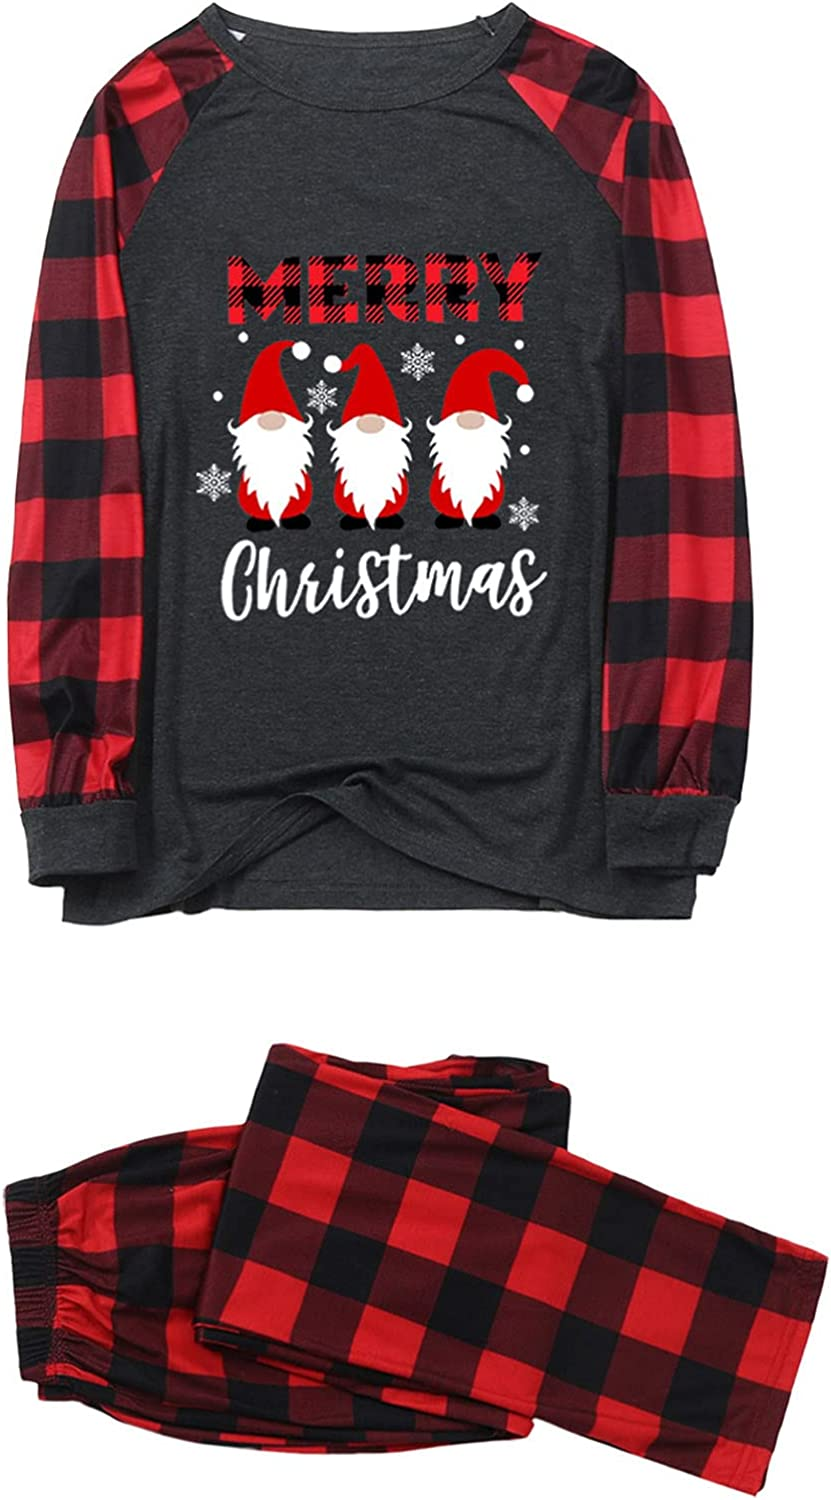 Matching Family Christmas Pajamas Set Long Sleeve Tee and Pants Loungewear Matching Sleepwear Clothes for Family